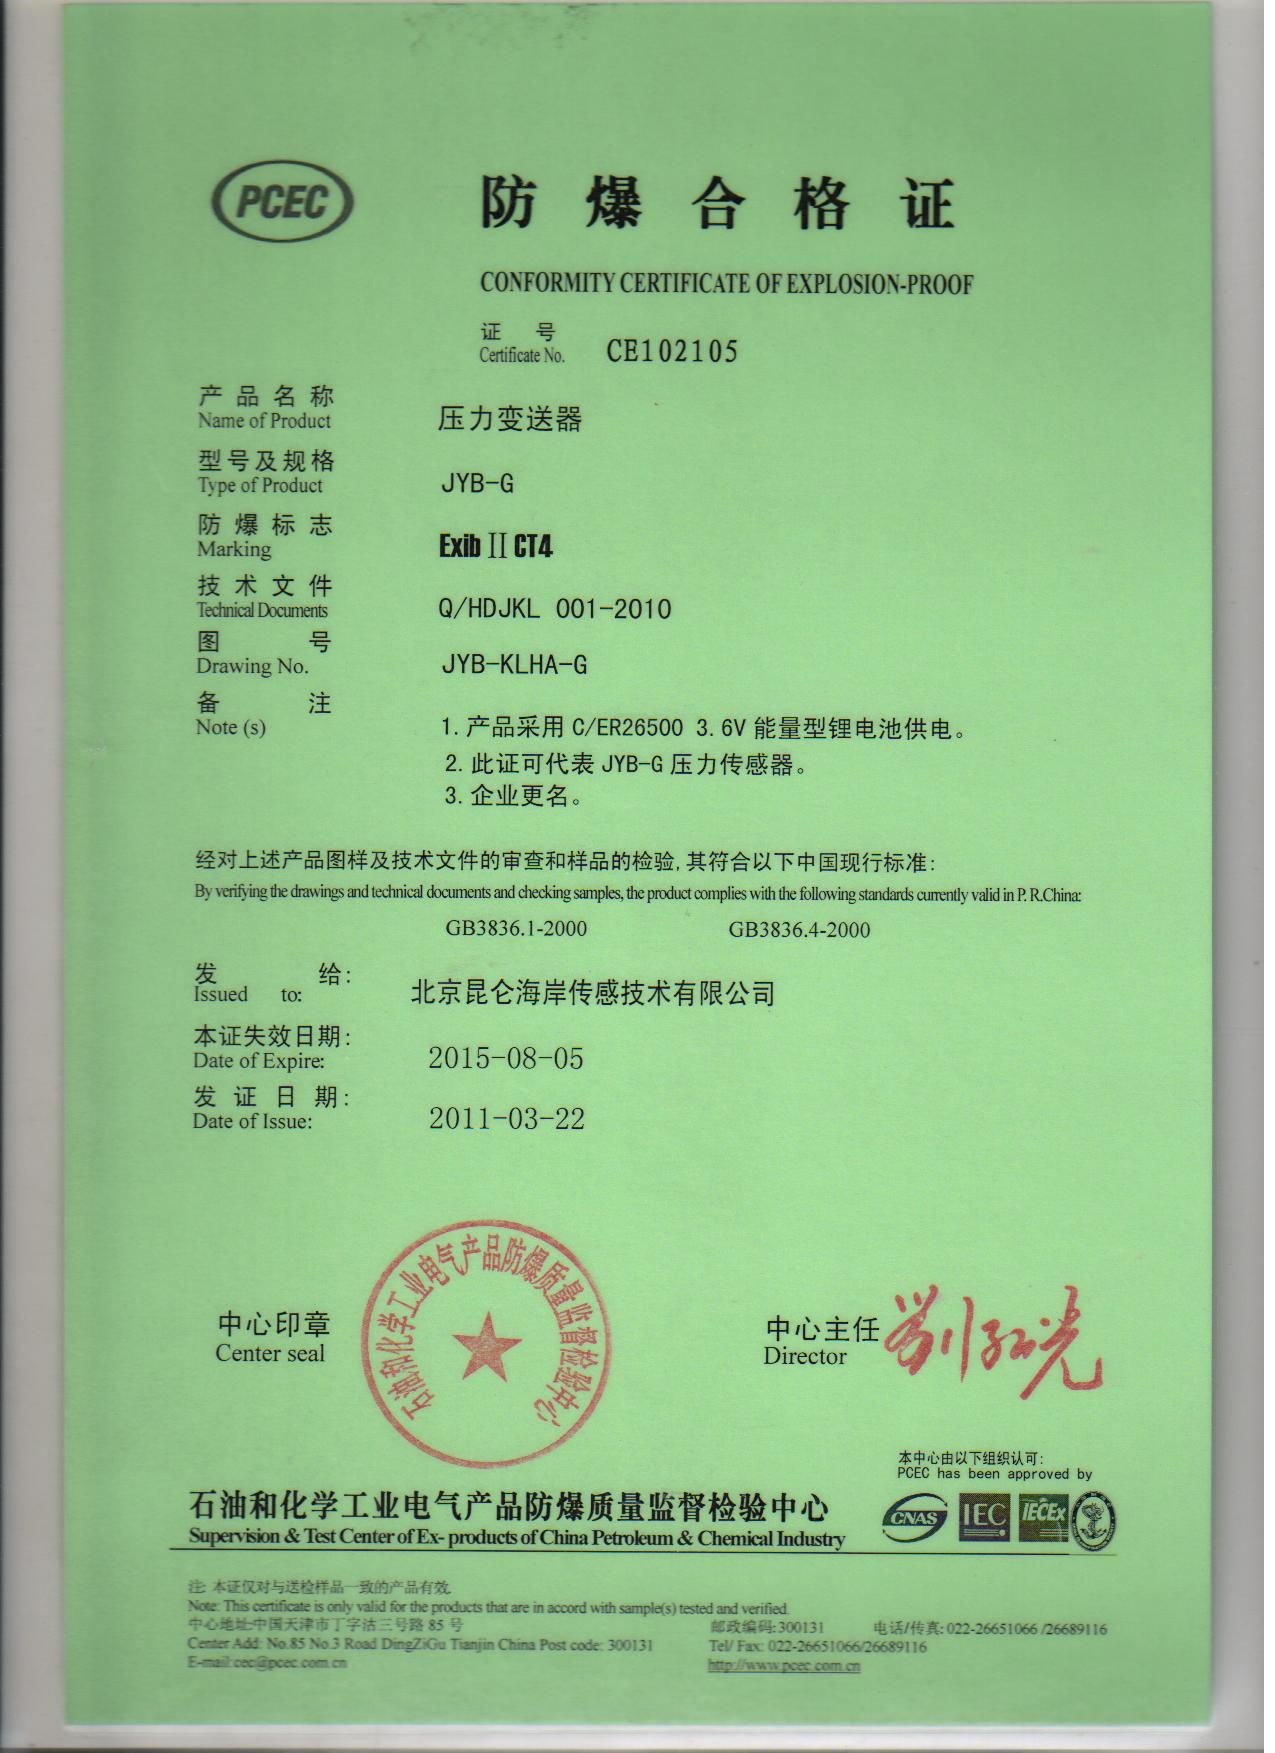 JYB-G explosion-proof certificate